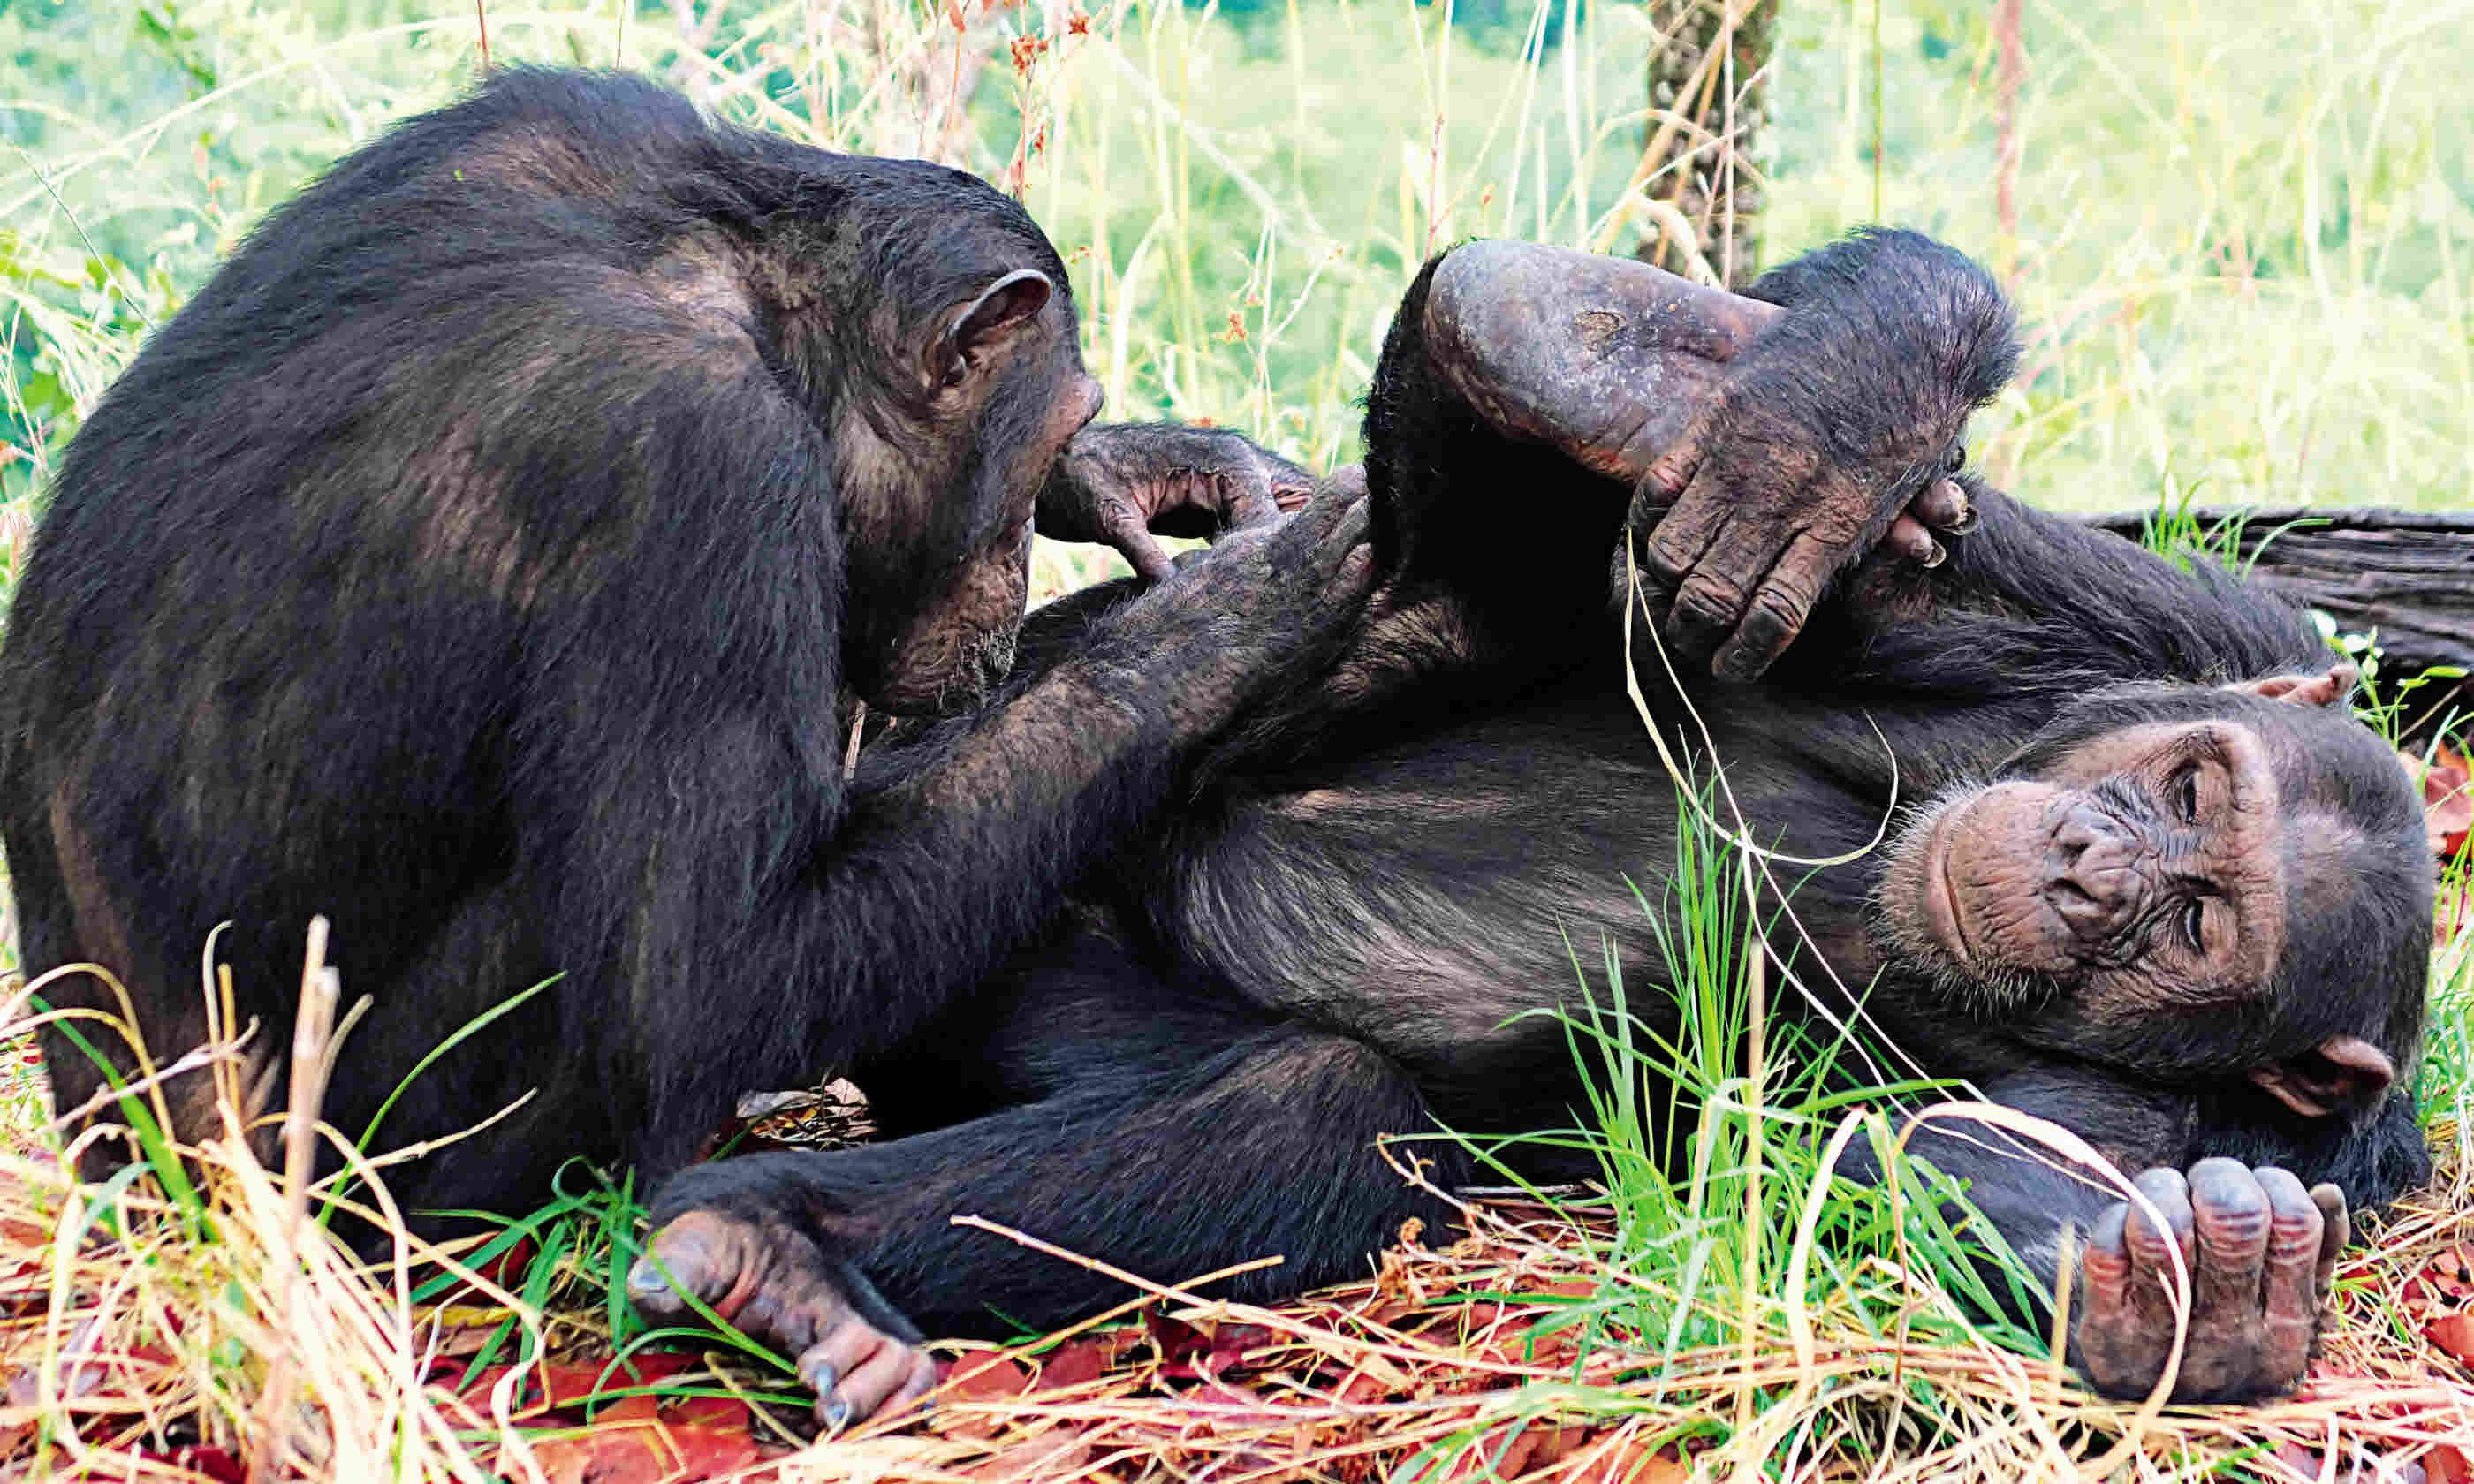 Grooming is a good bonding experience for the chimps (Sarah Gilbert)